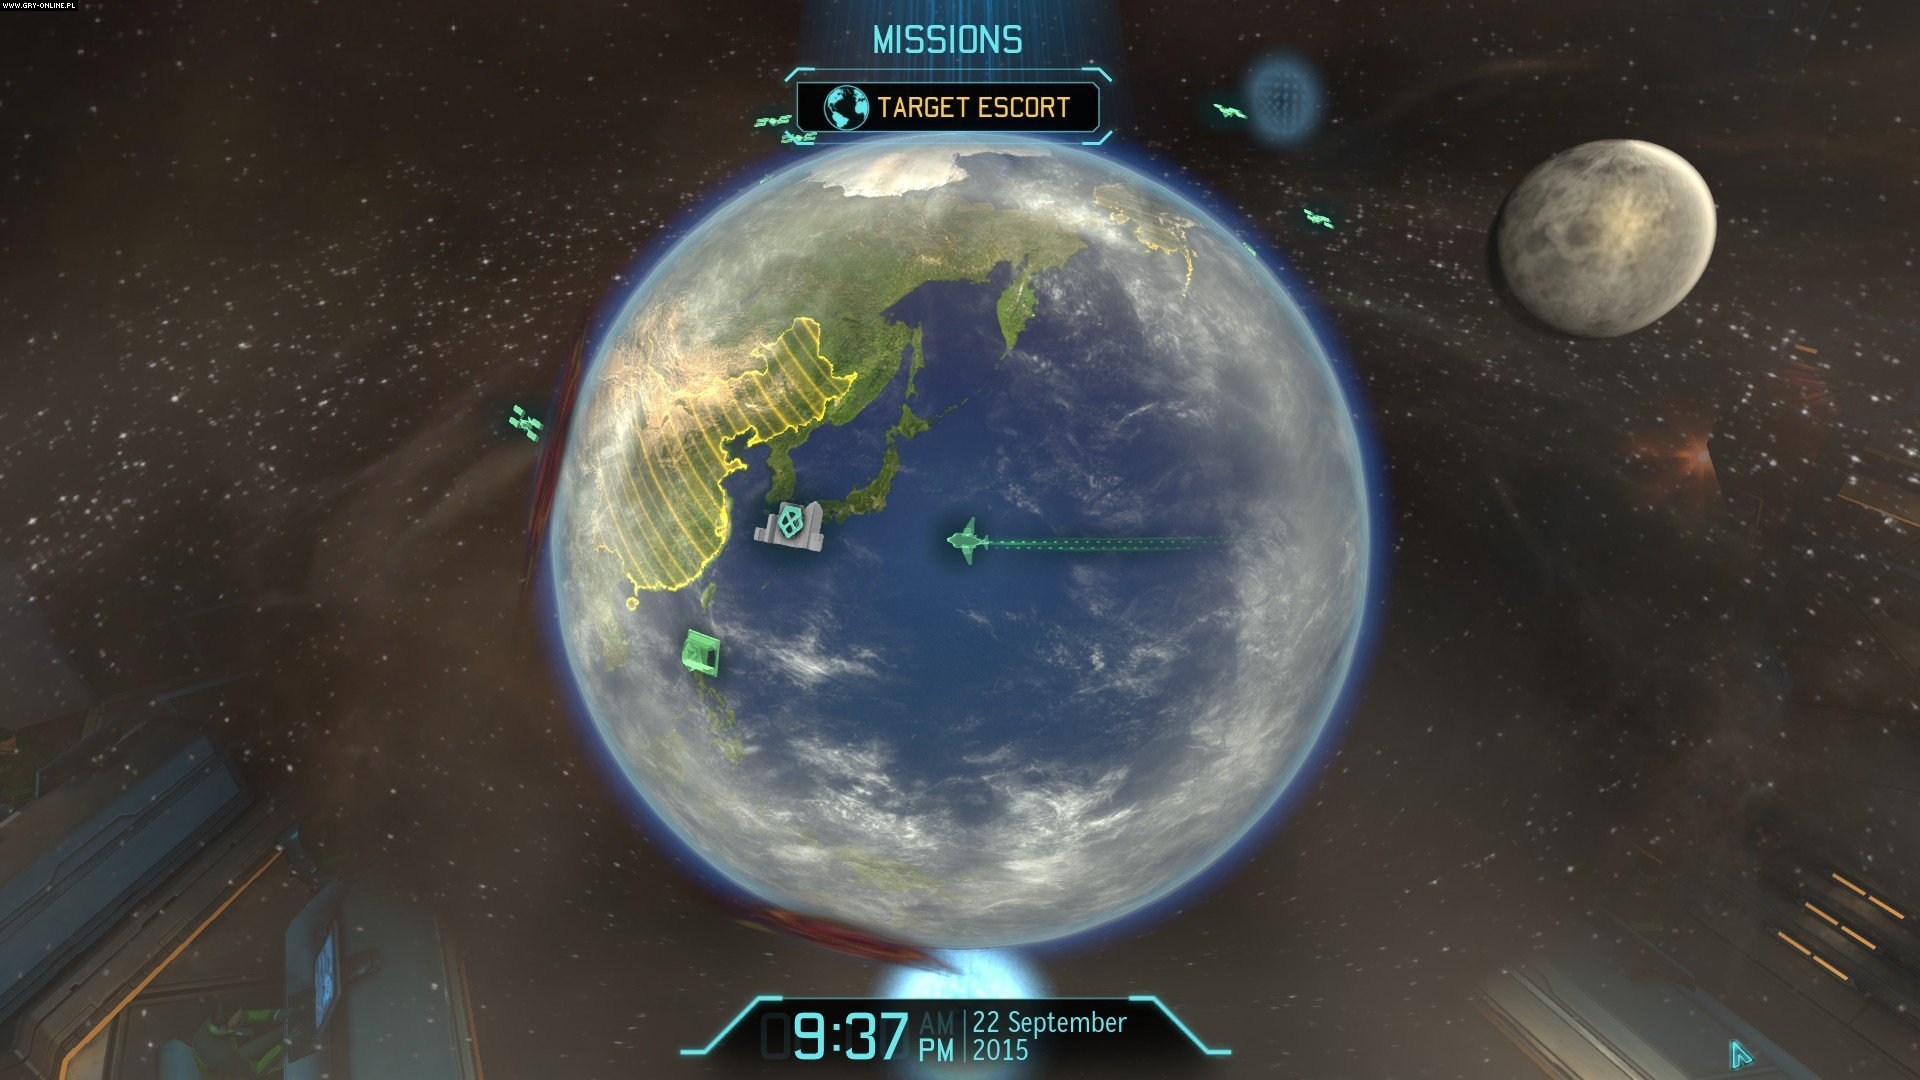 XCOM: Enemy Unknown PC, X360, PS3 Gry Screen 39/179, Firaxis Games, 2K Games